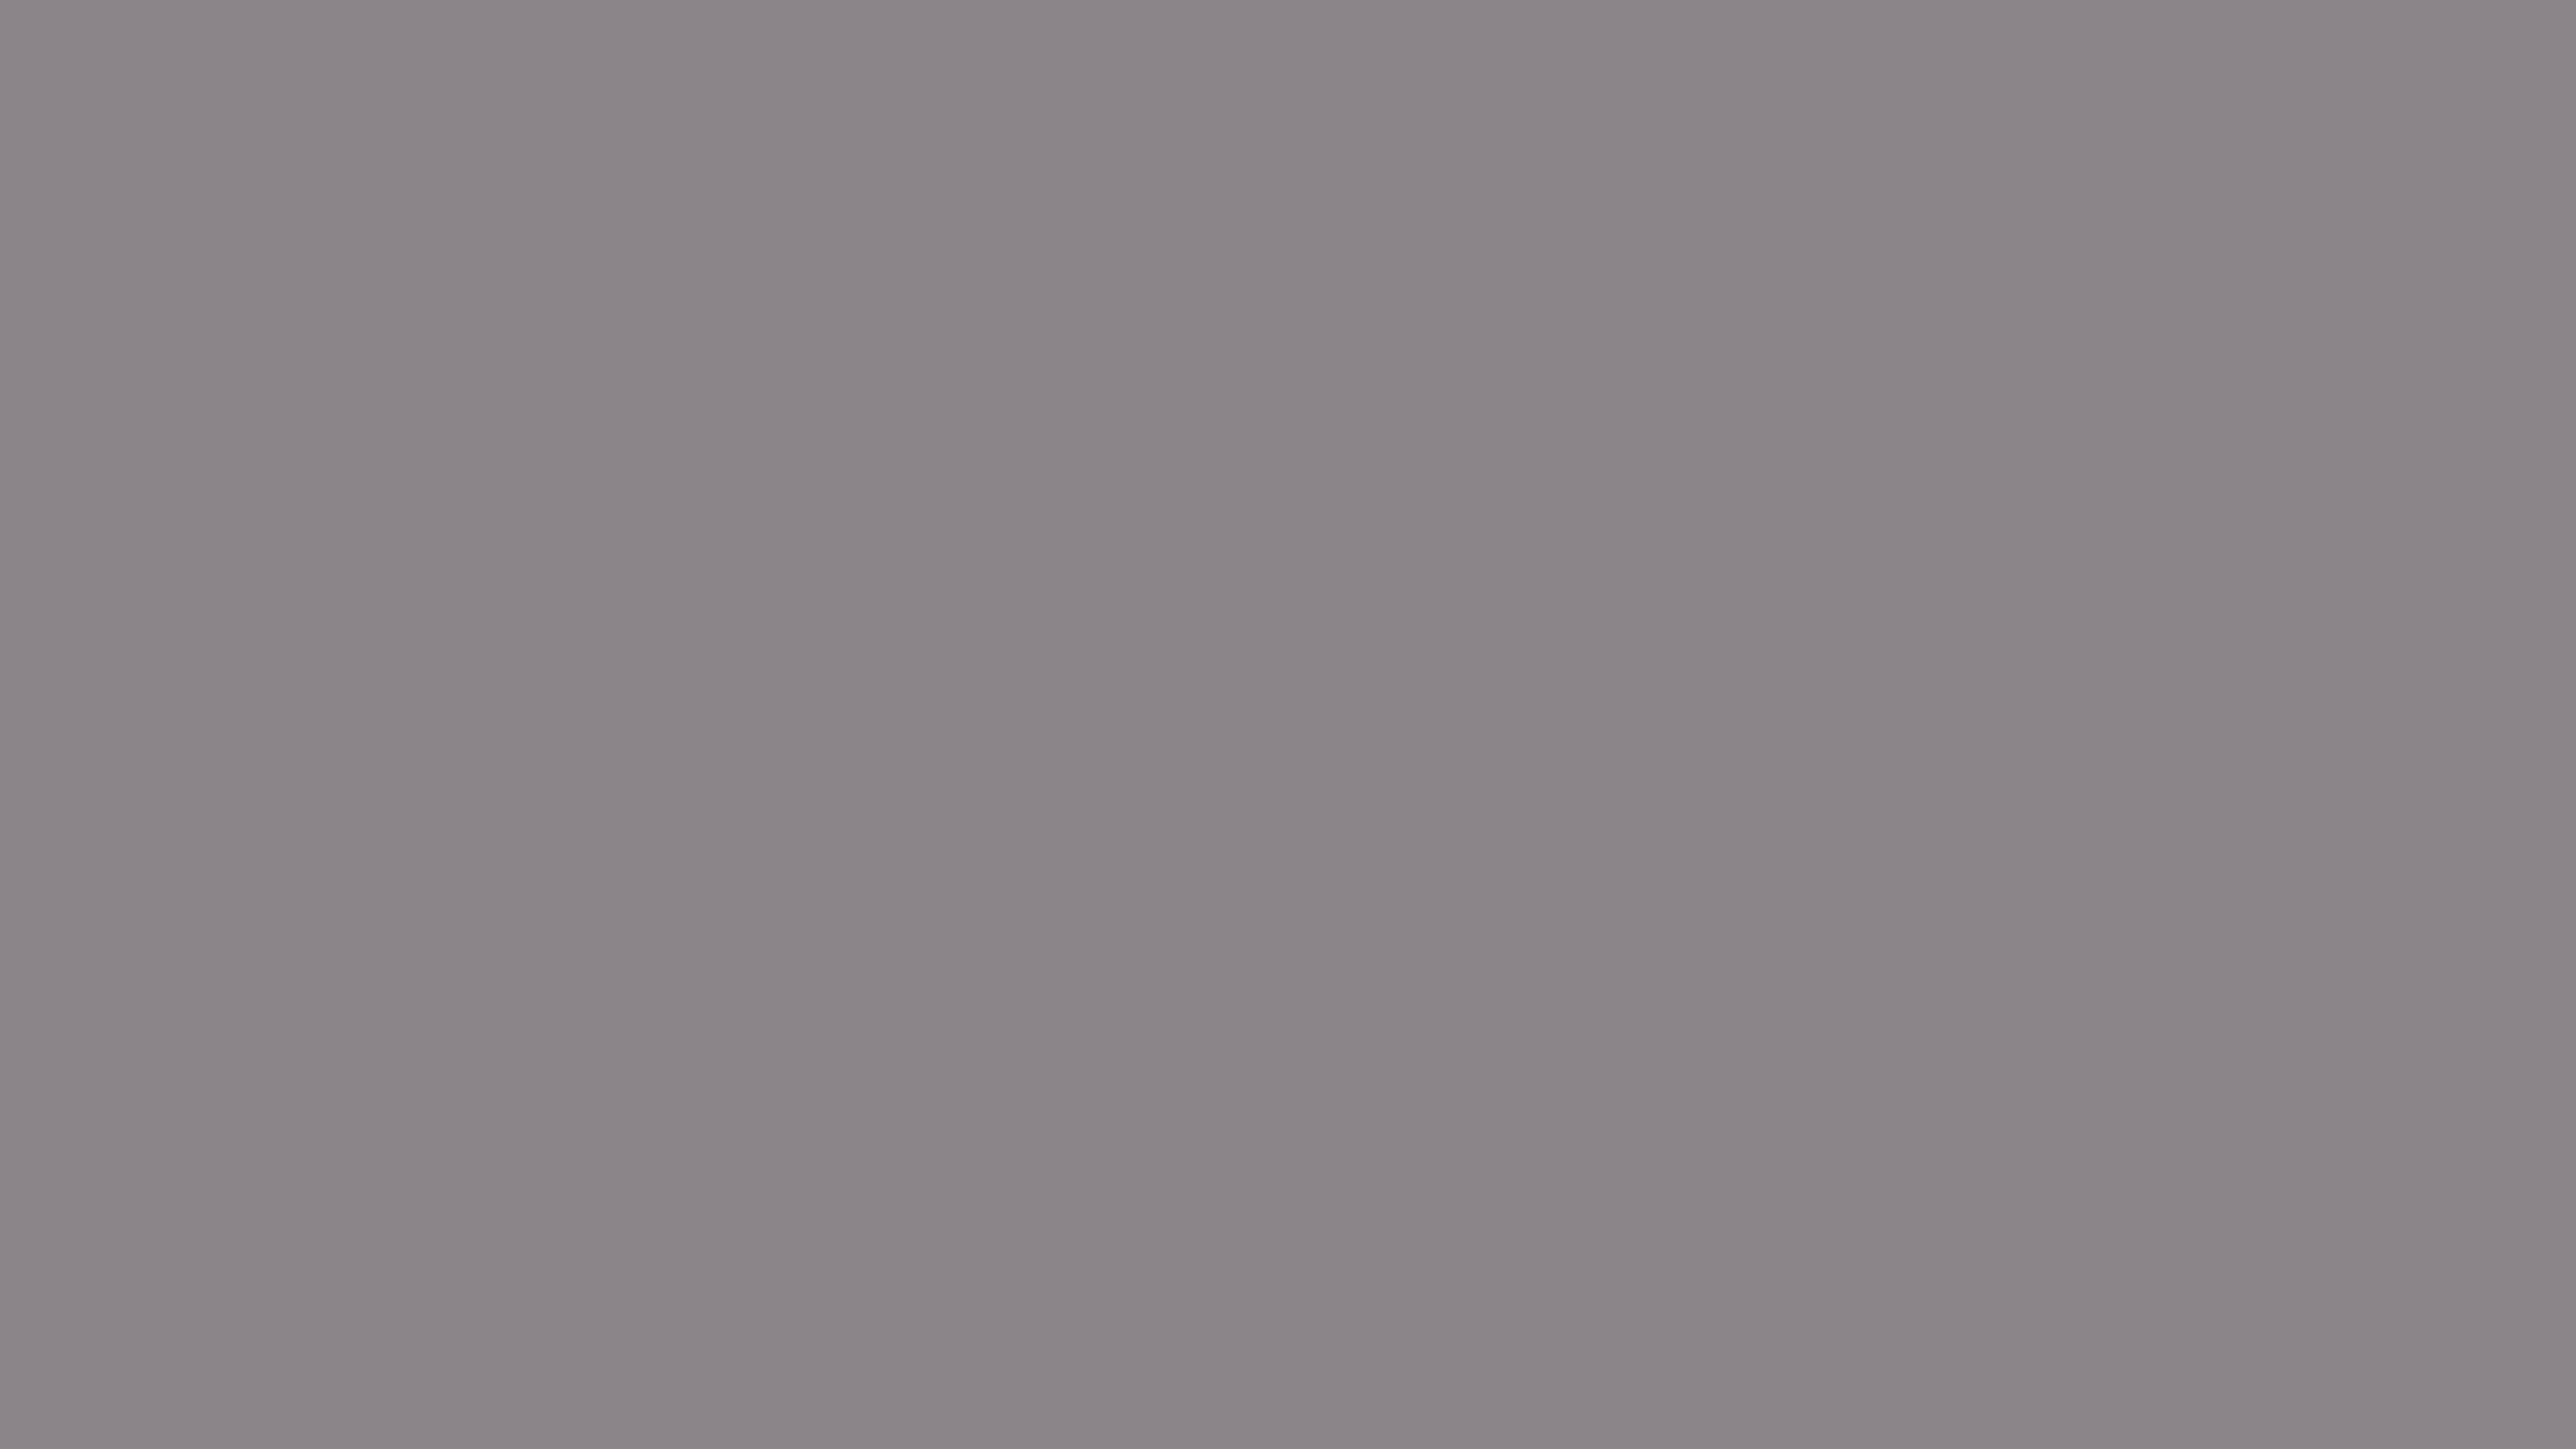 4096x2304 Taupe Gray Solid Color Background